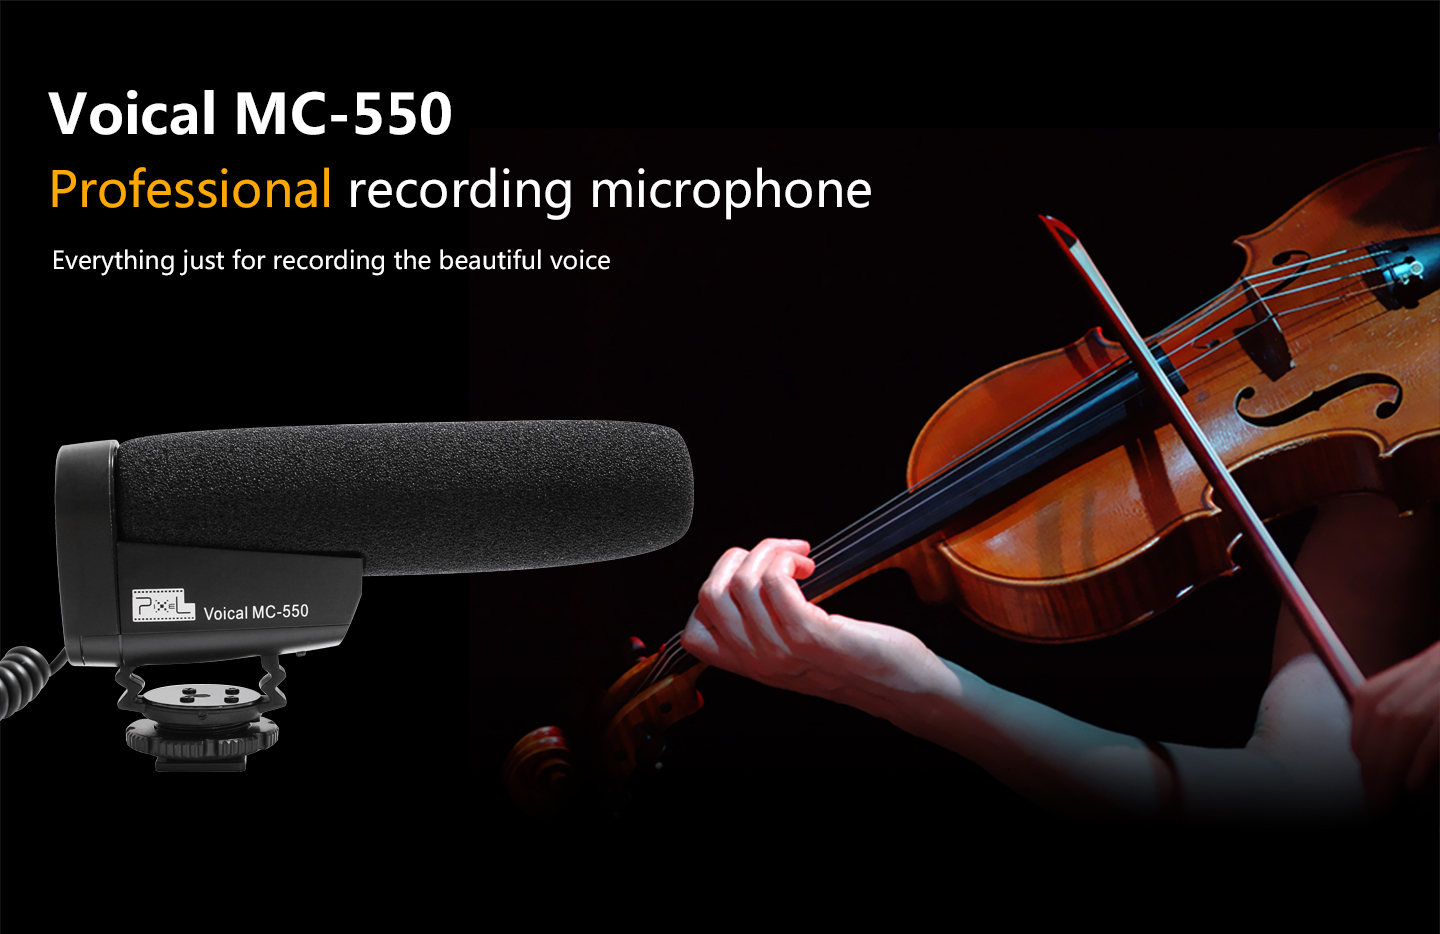 Voical MC-550 Professional recording microphone